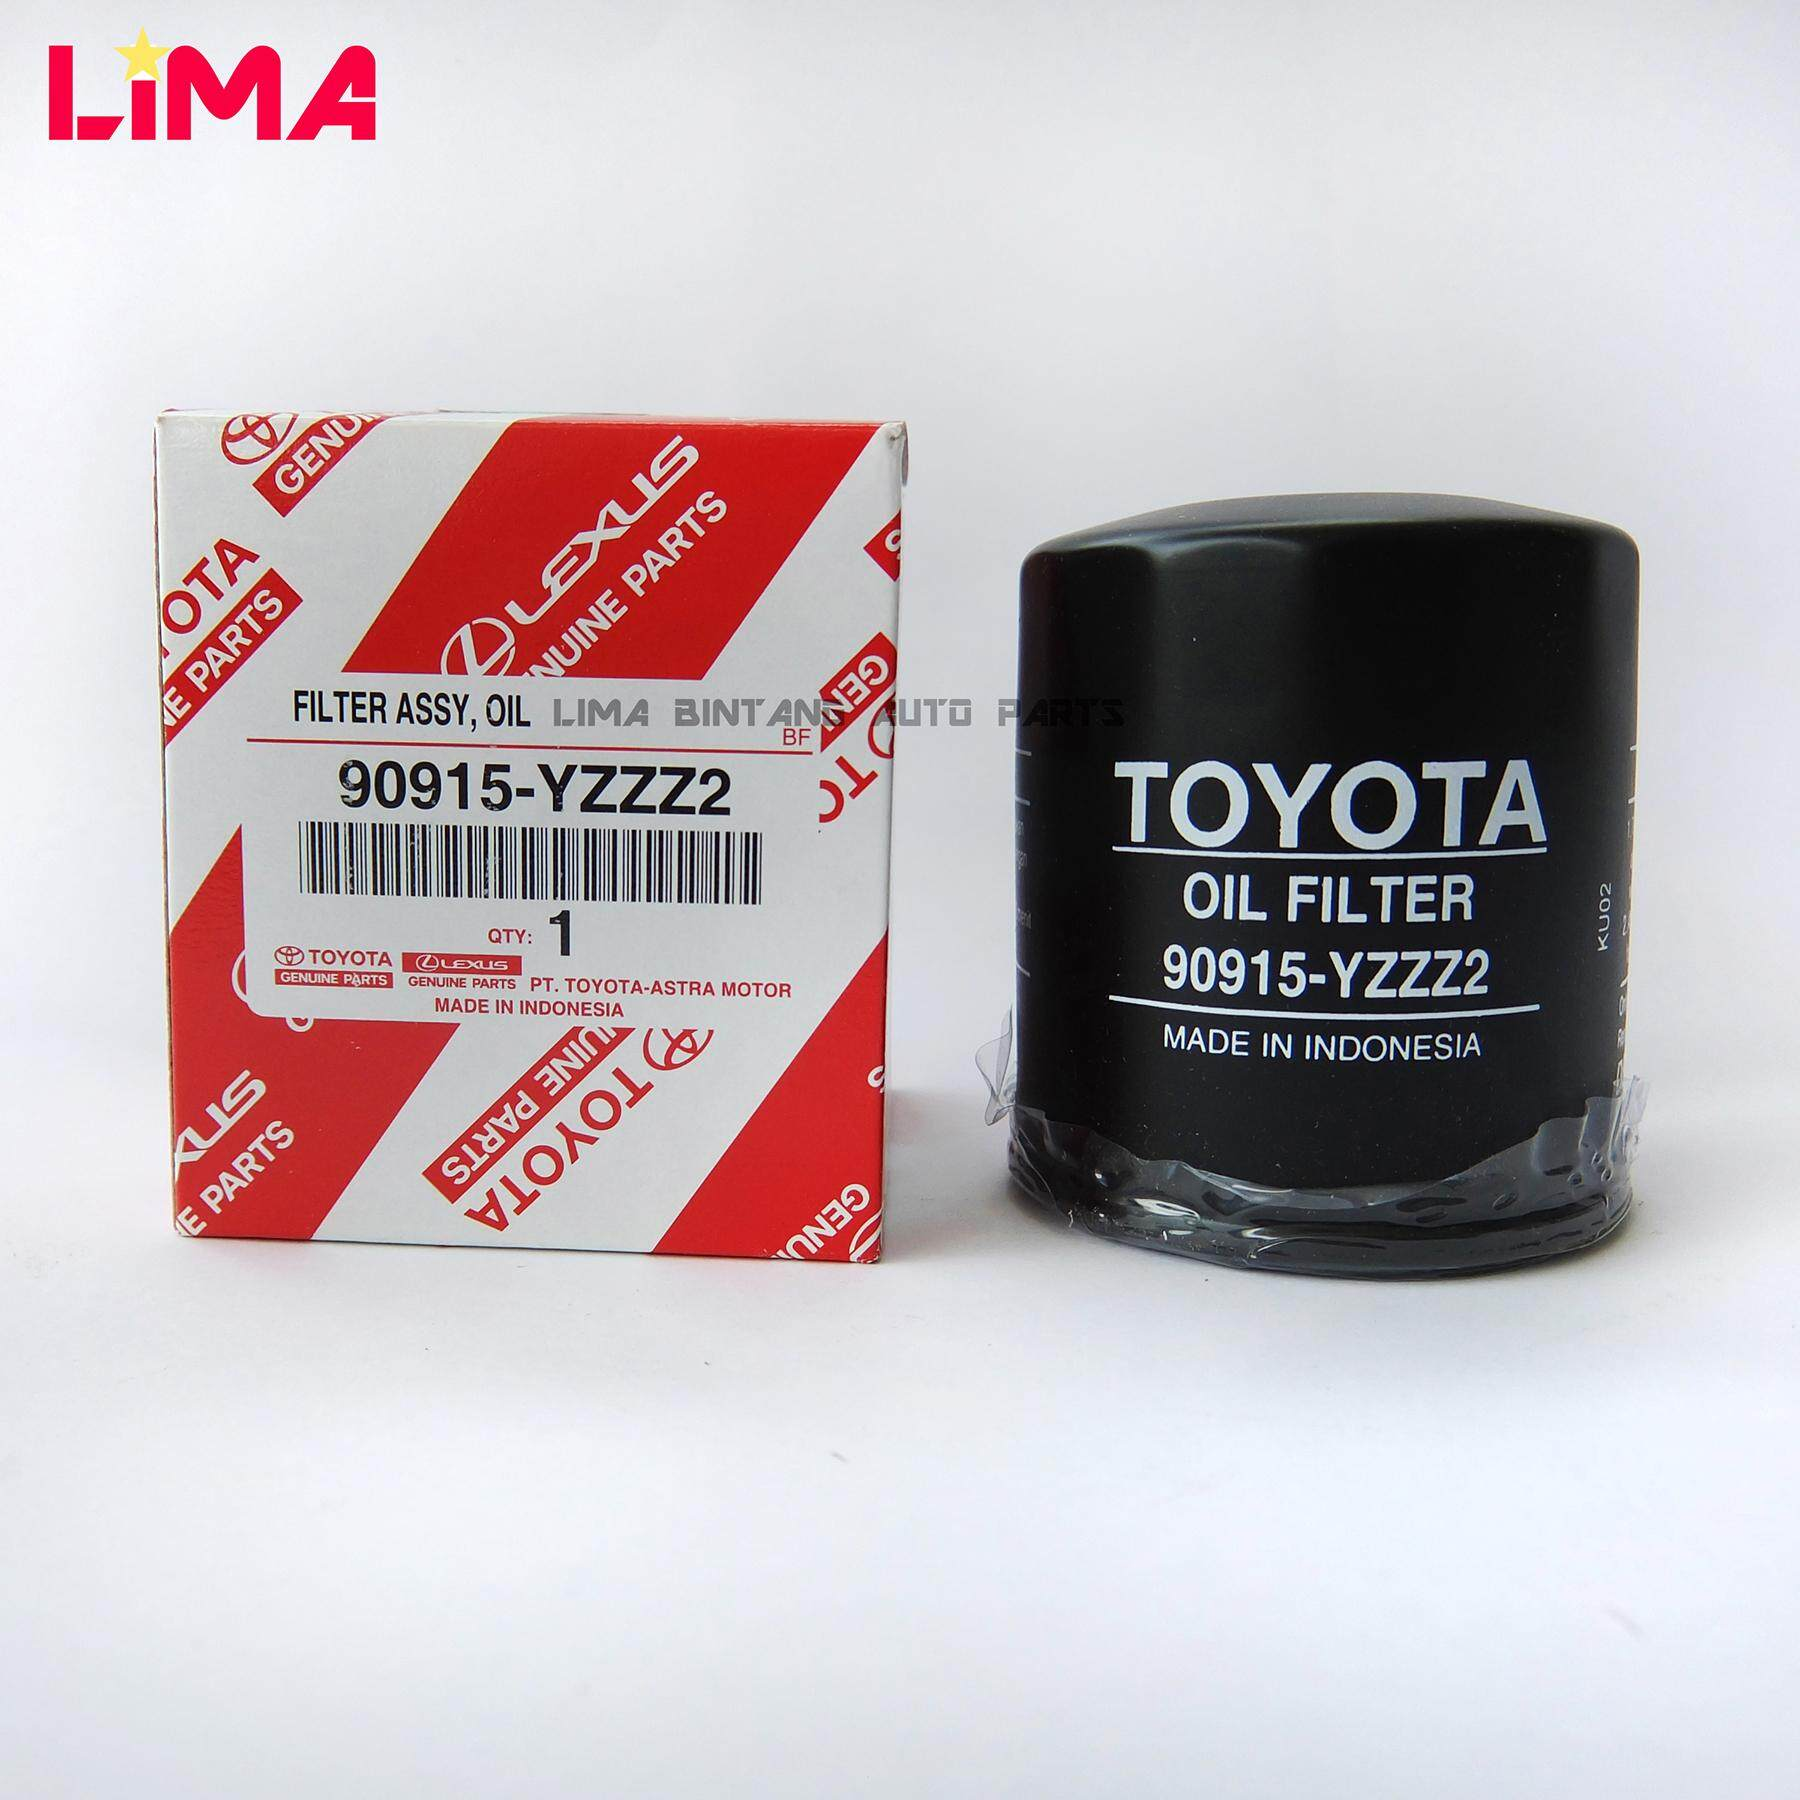 Toyota Auto Parts Spares Price In Malaysia Best 2008 Corolla Fuel Filter Harrier Innova Hilux Camry Oil Penapis Minyak Original